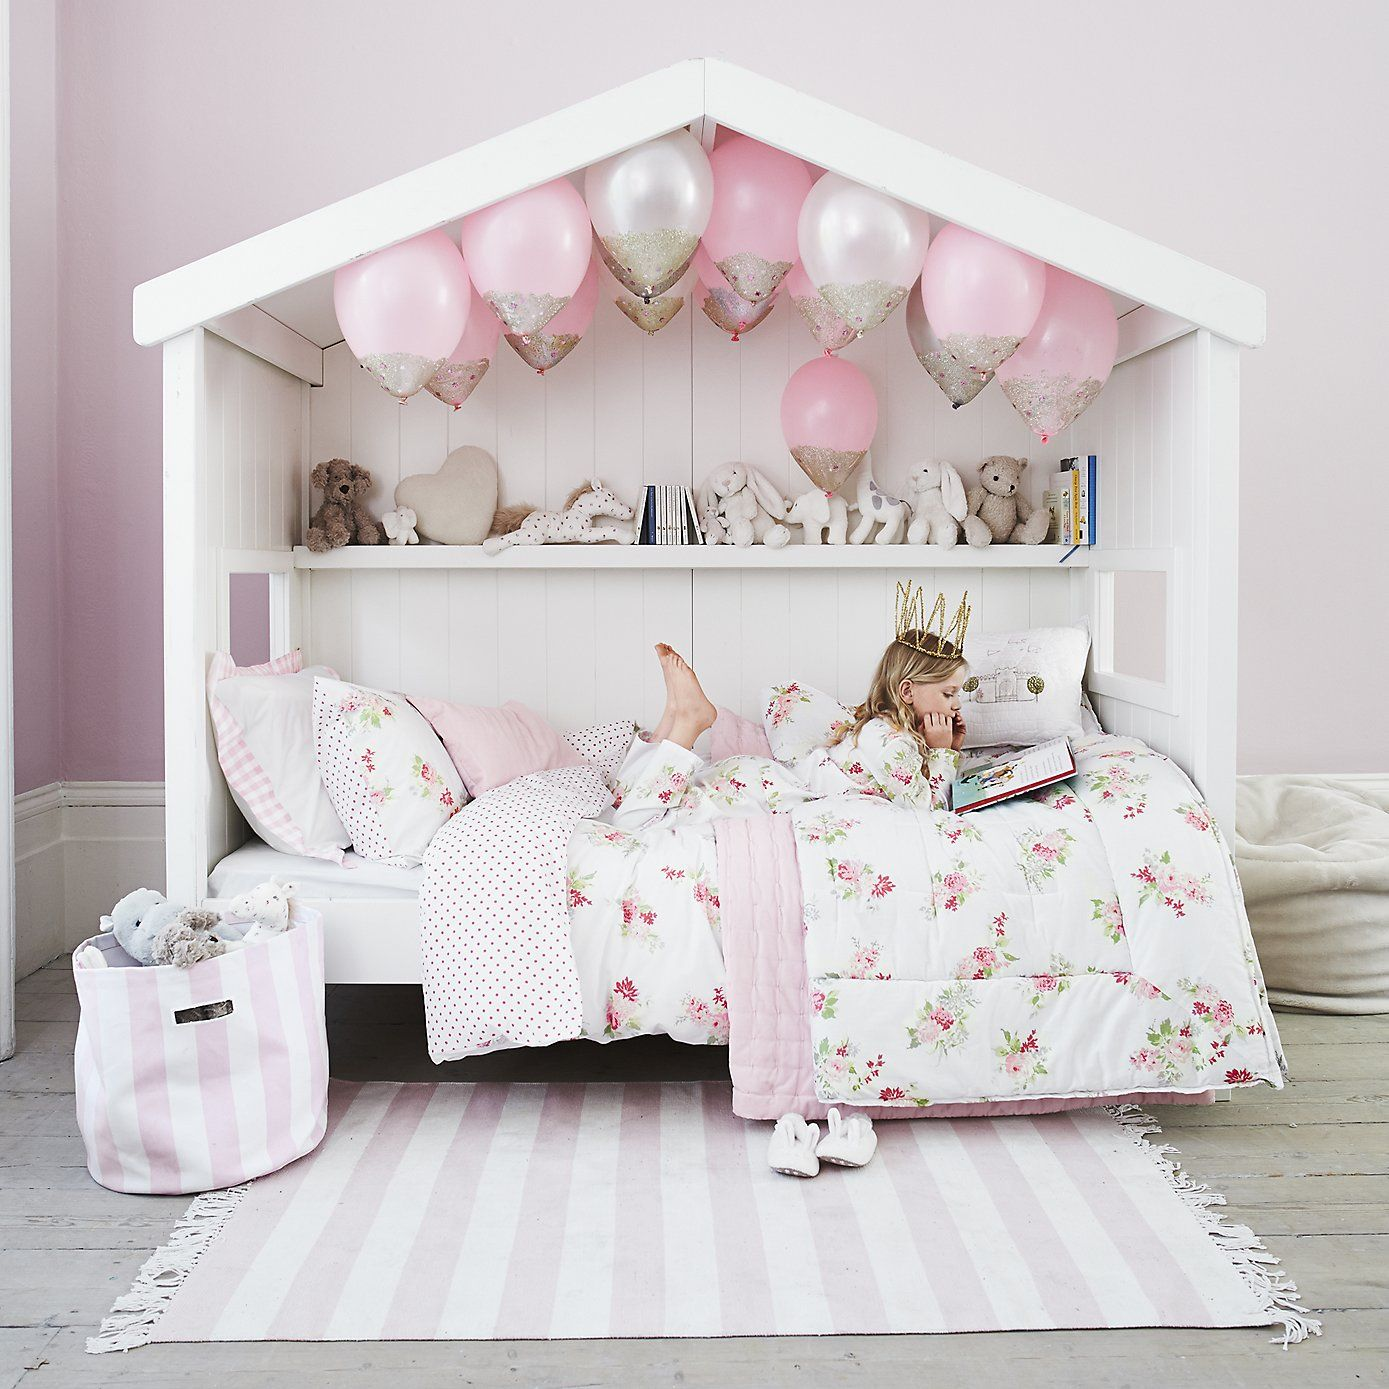 Classic House Day Bed Beds The White Company Girl Room Childrens Bedrooms Toddler Bedrooms